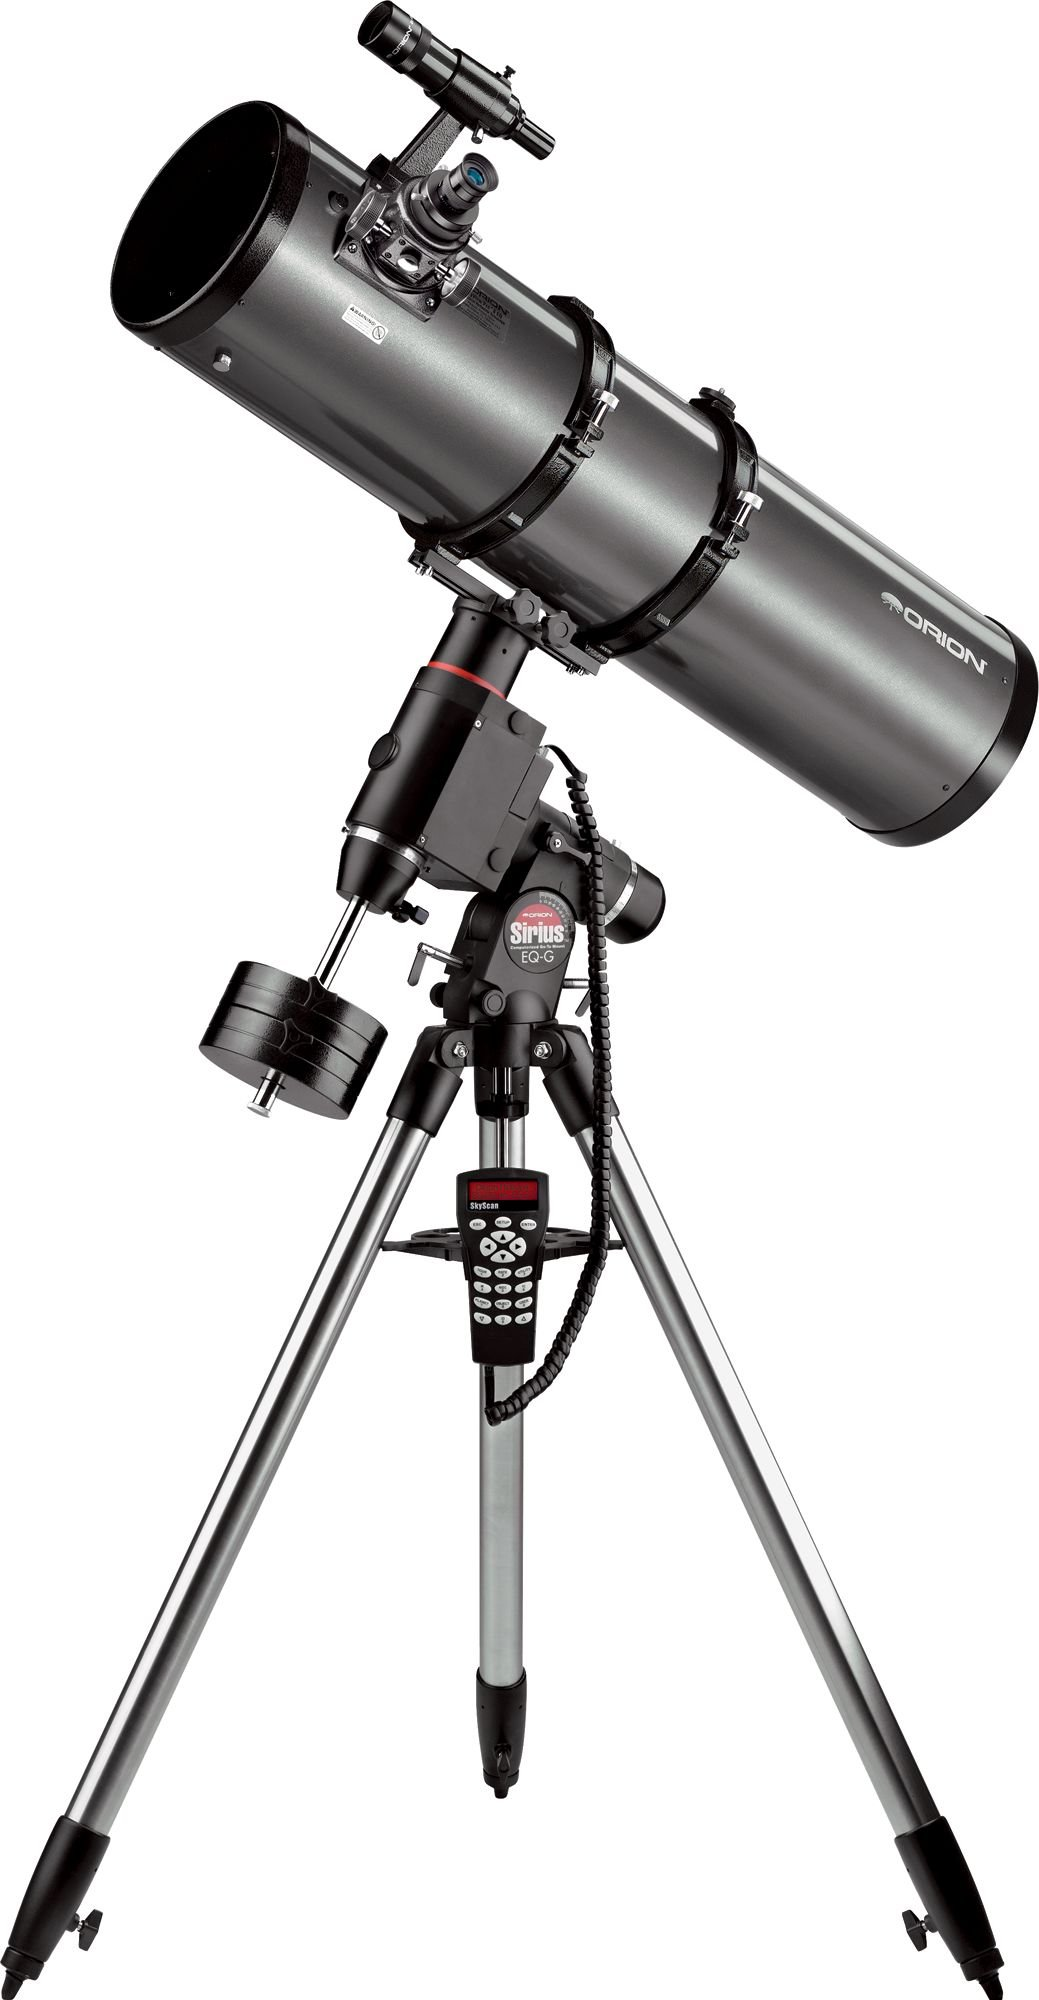 Orion Sirius 8 EQ-G GoTo Reflector Telescope by Orion